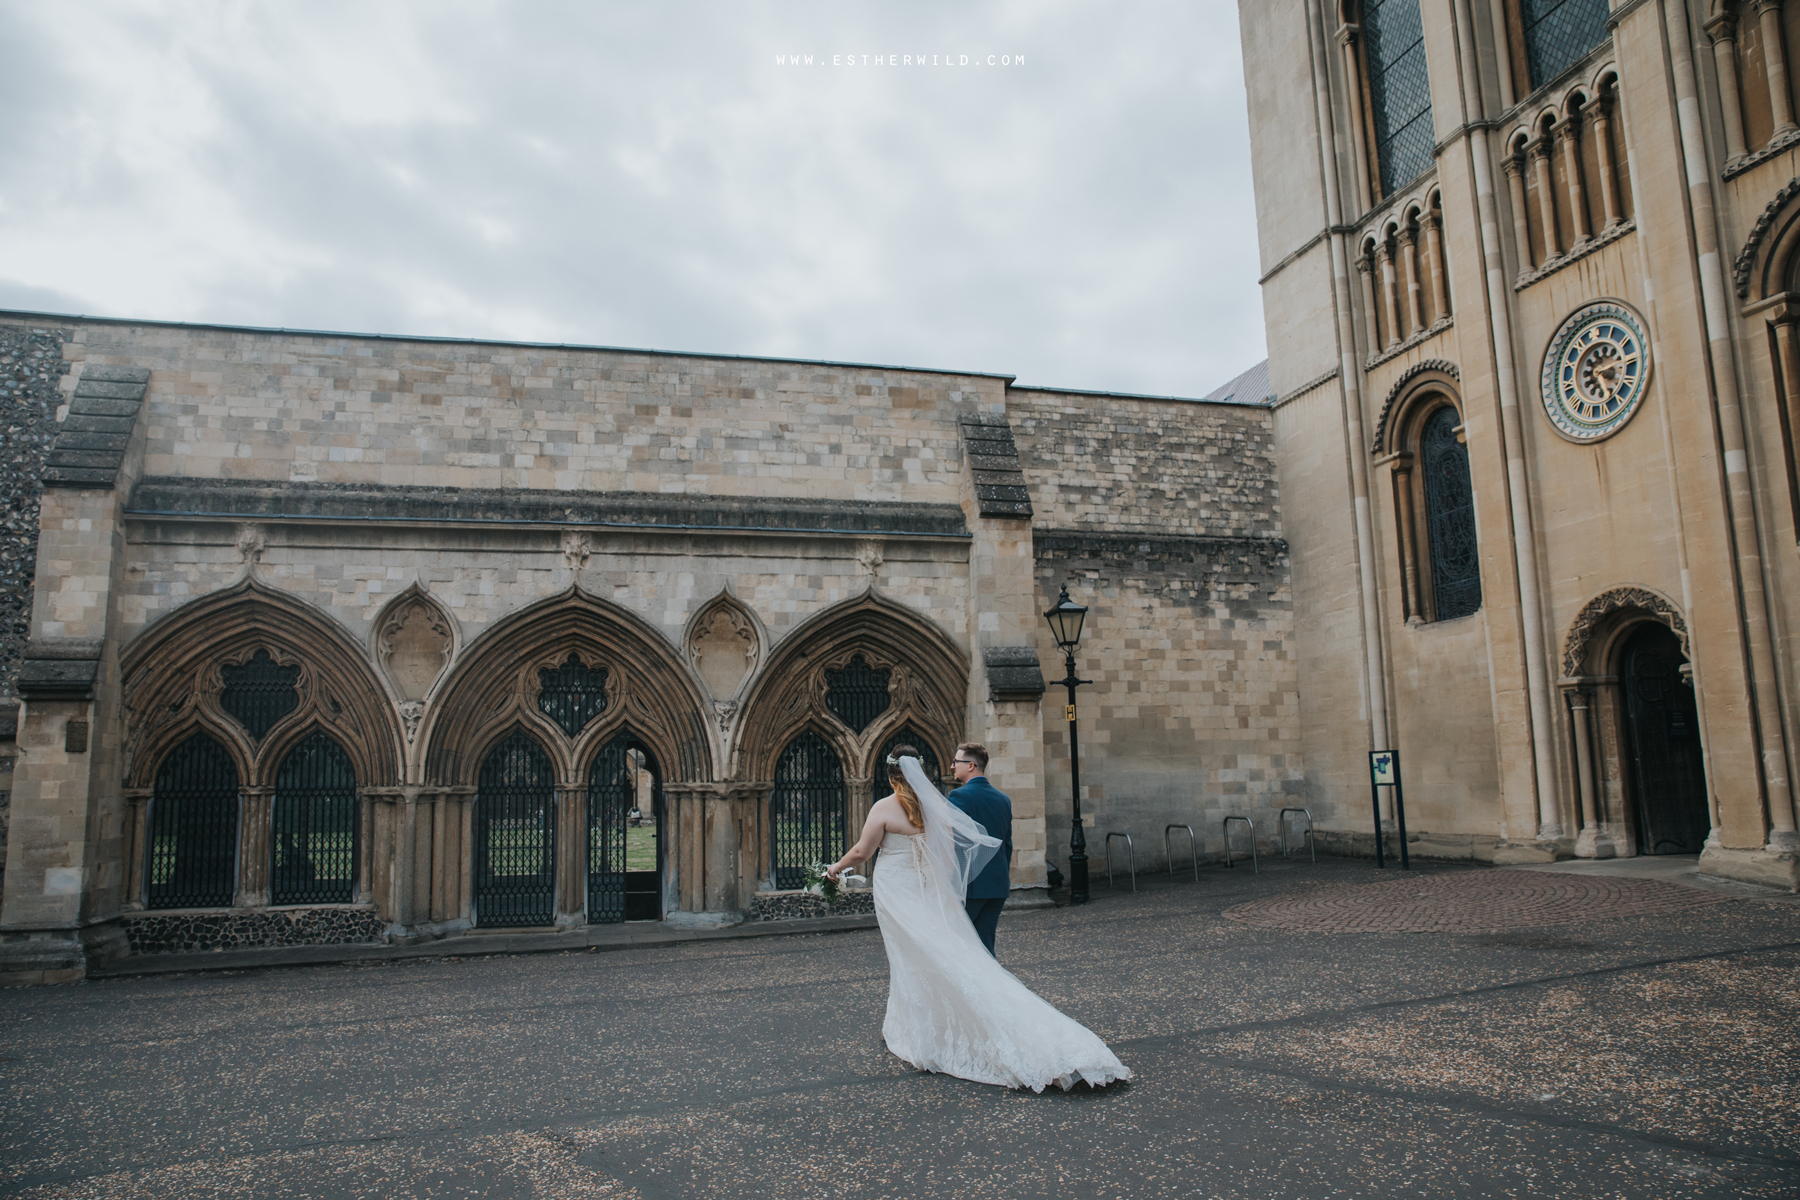 Norwich_Castle_Arcade_Grosvenor_Chip_Birdcage_Cathedral_Cloisters_Refectory_Wedding_Photography_Esther_Wild_Photographer_Norfolk_Kings_Lynn_3R8A1958.jpg